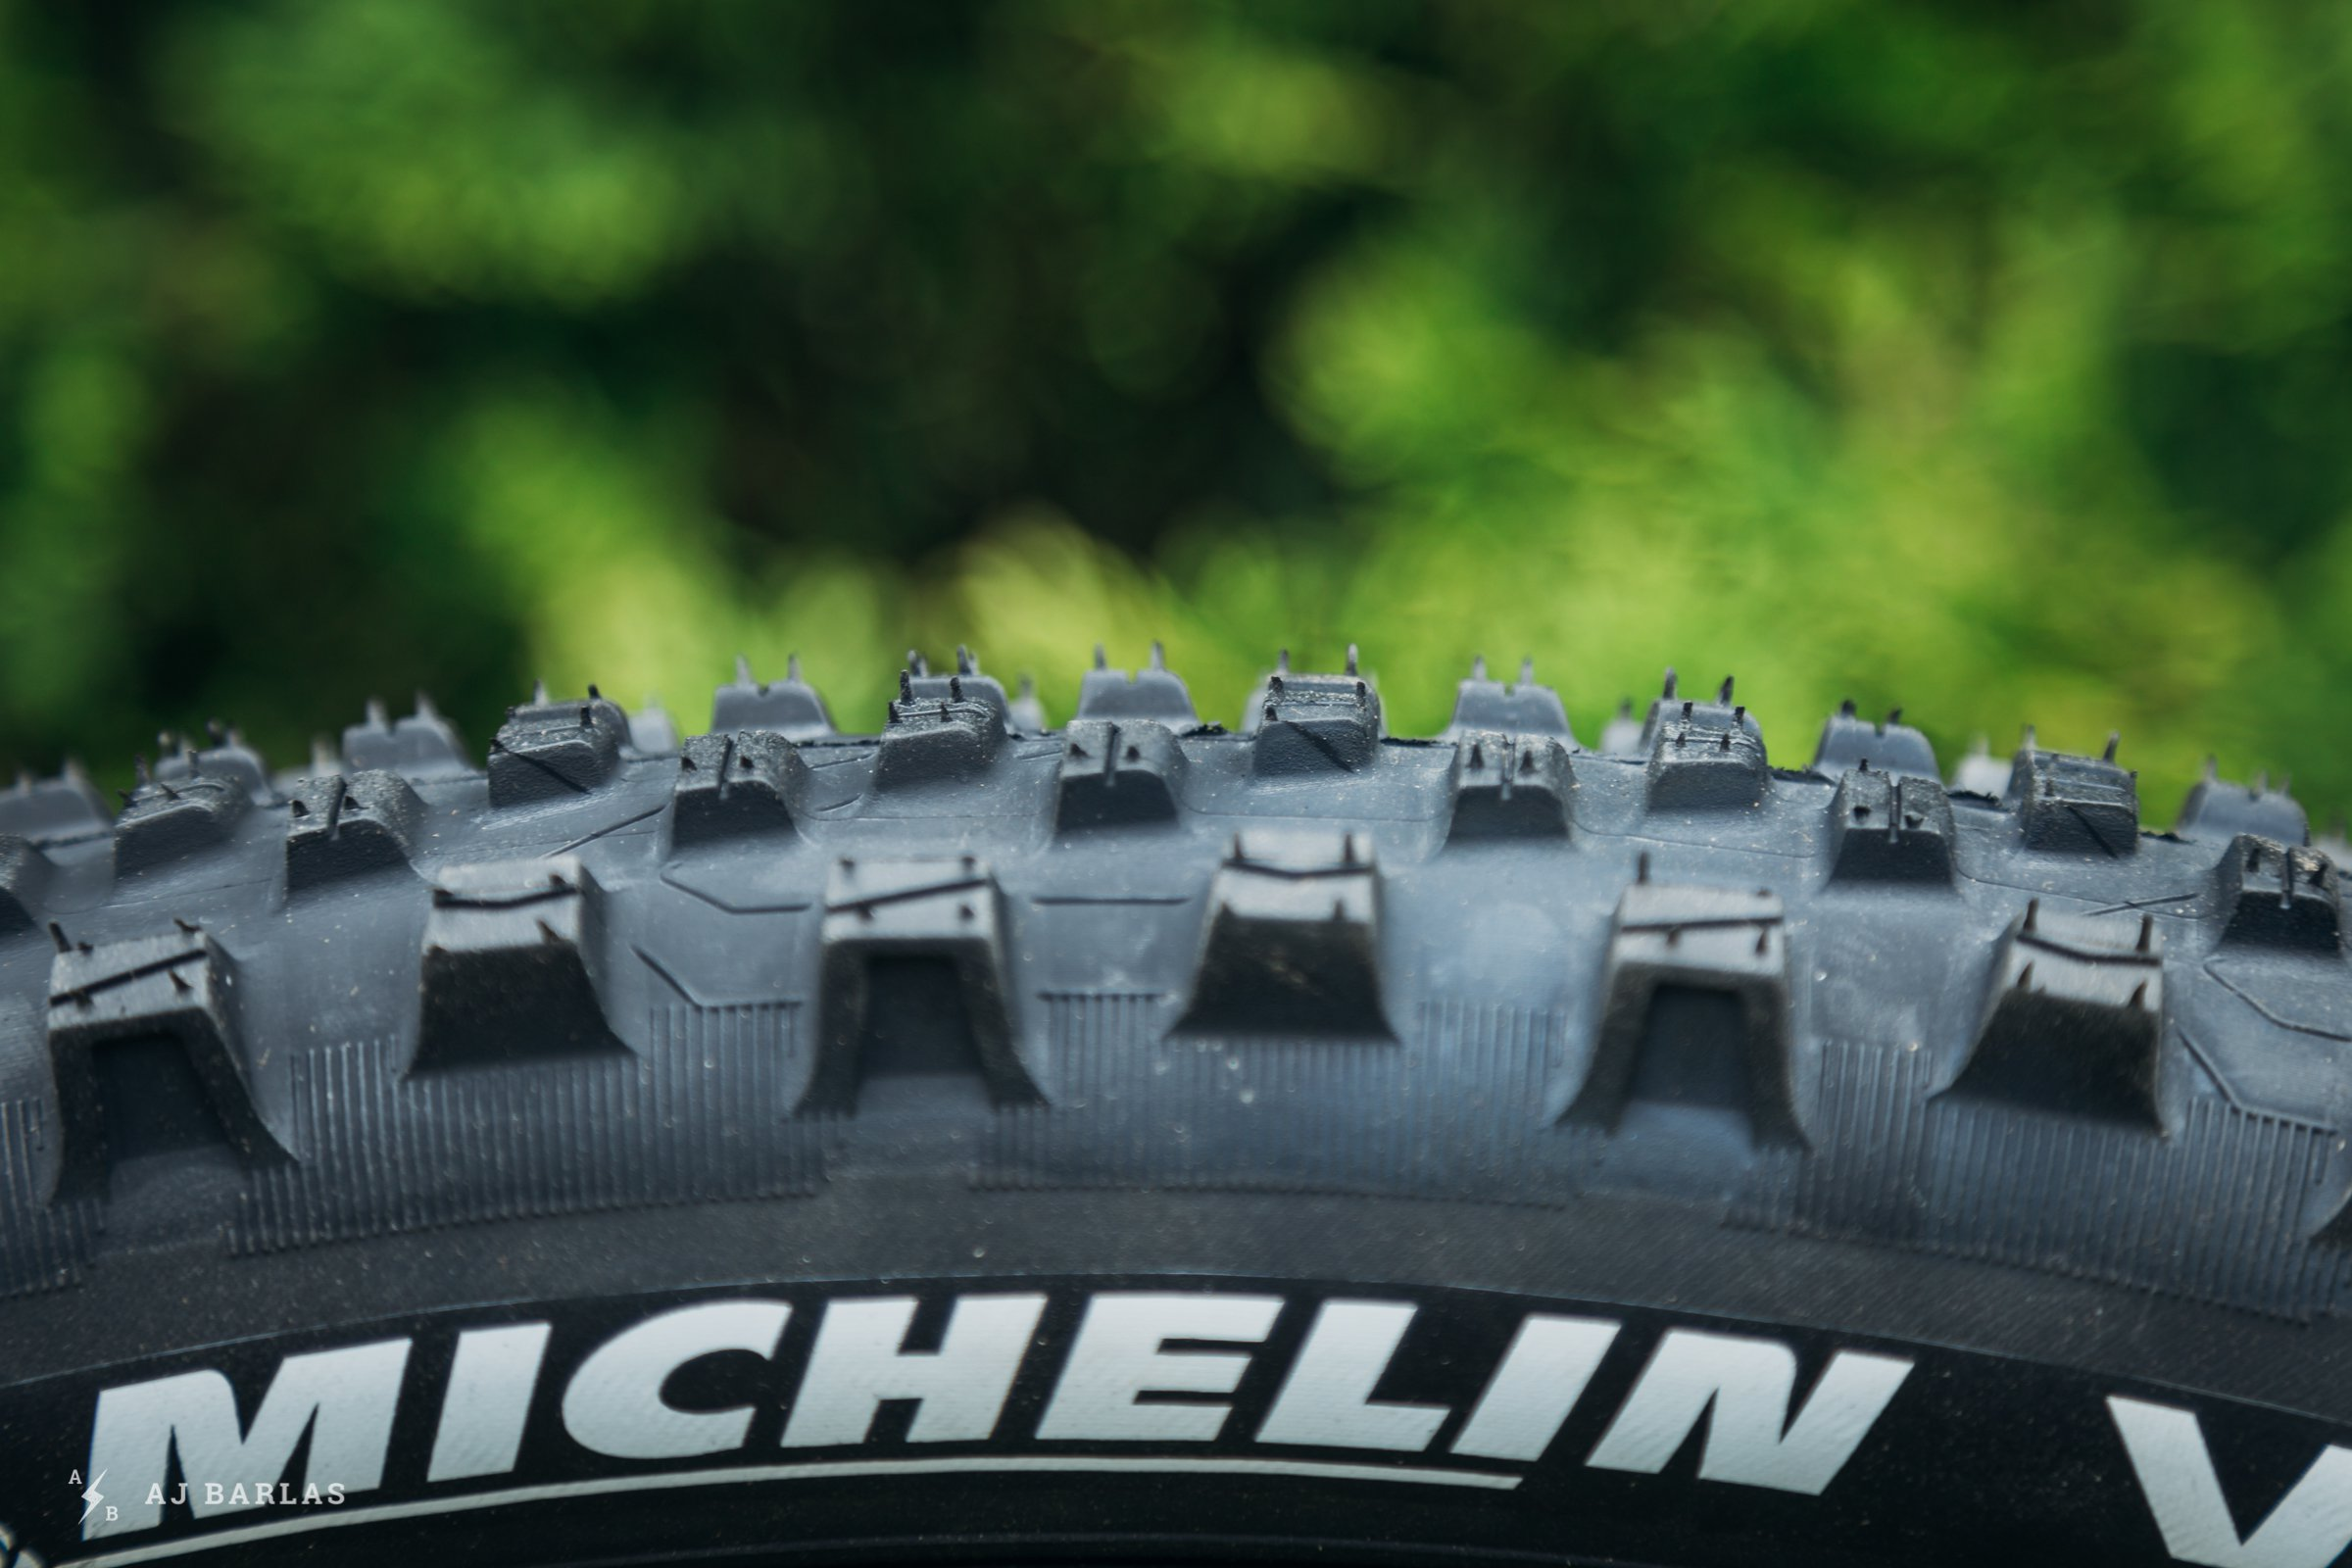 michelin-wild-am-tire-210518-ajbarlas-7136.jpg